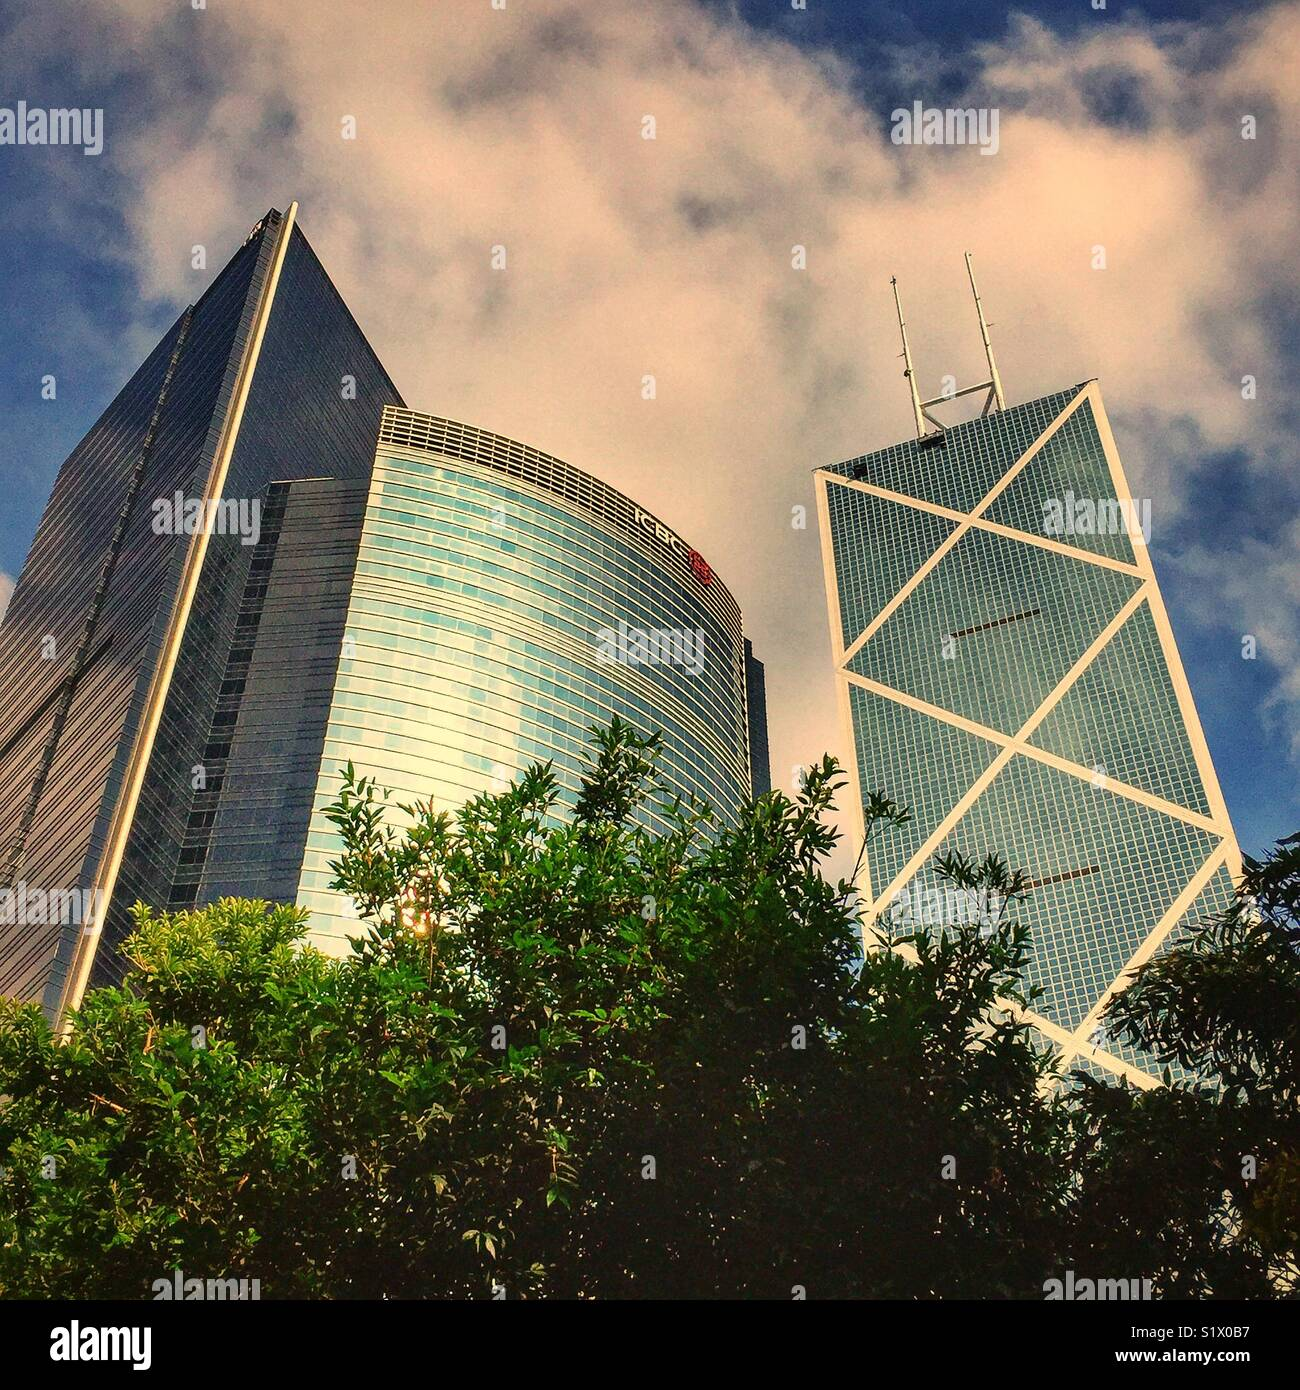 (L to R) Champion Tower and ICBC Tower at 3 Garden Road, and the Bank of China Tower at 1 Garden Road, Central, - Stock Image